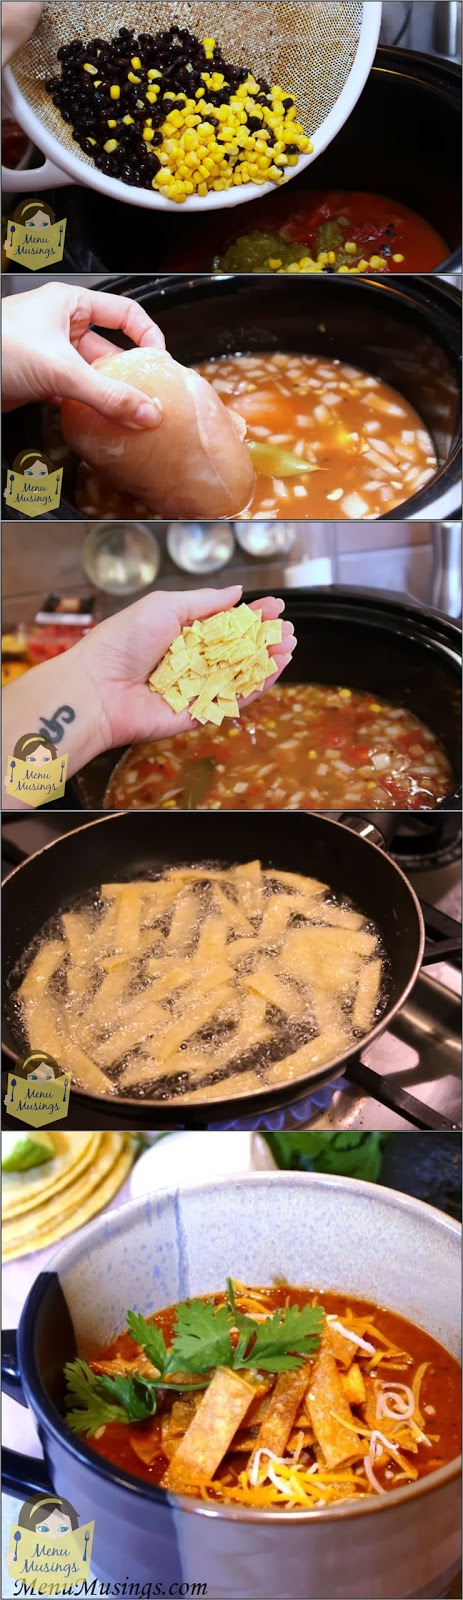 http://menumusings.blogspot.com/2012/10/crock-pot-chicken-tortilla-soup.html